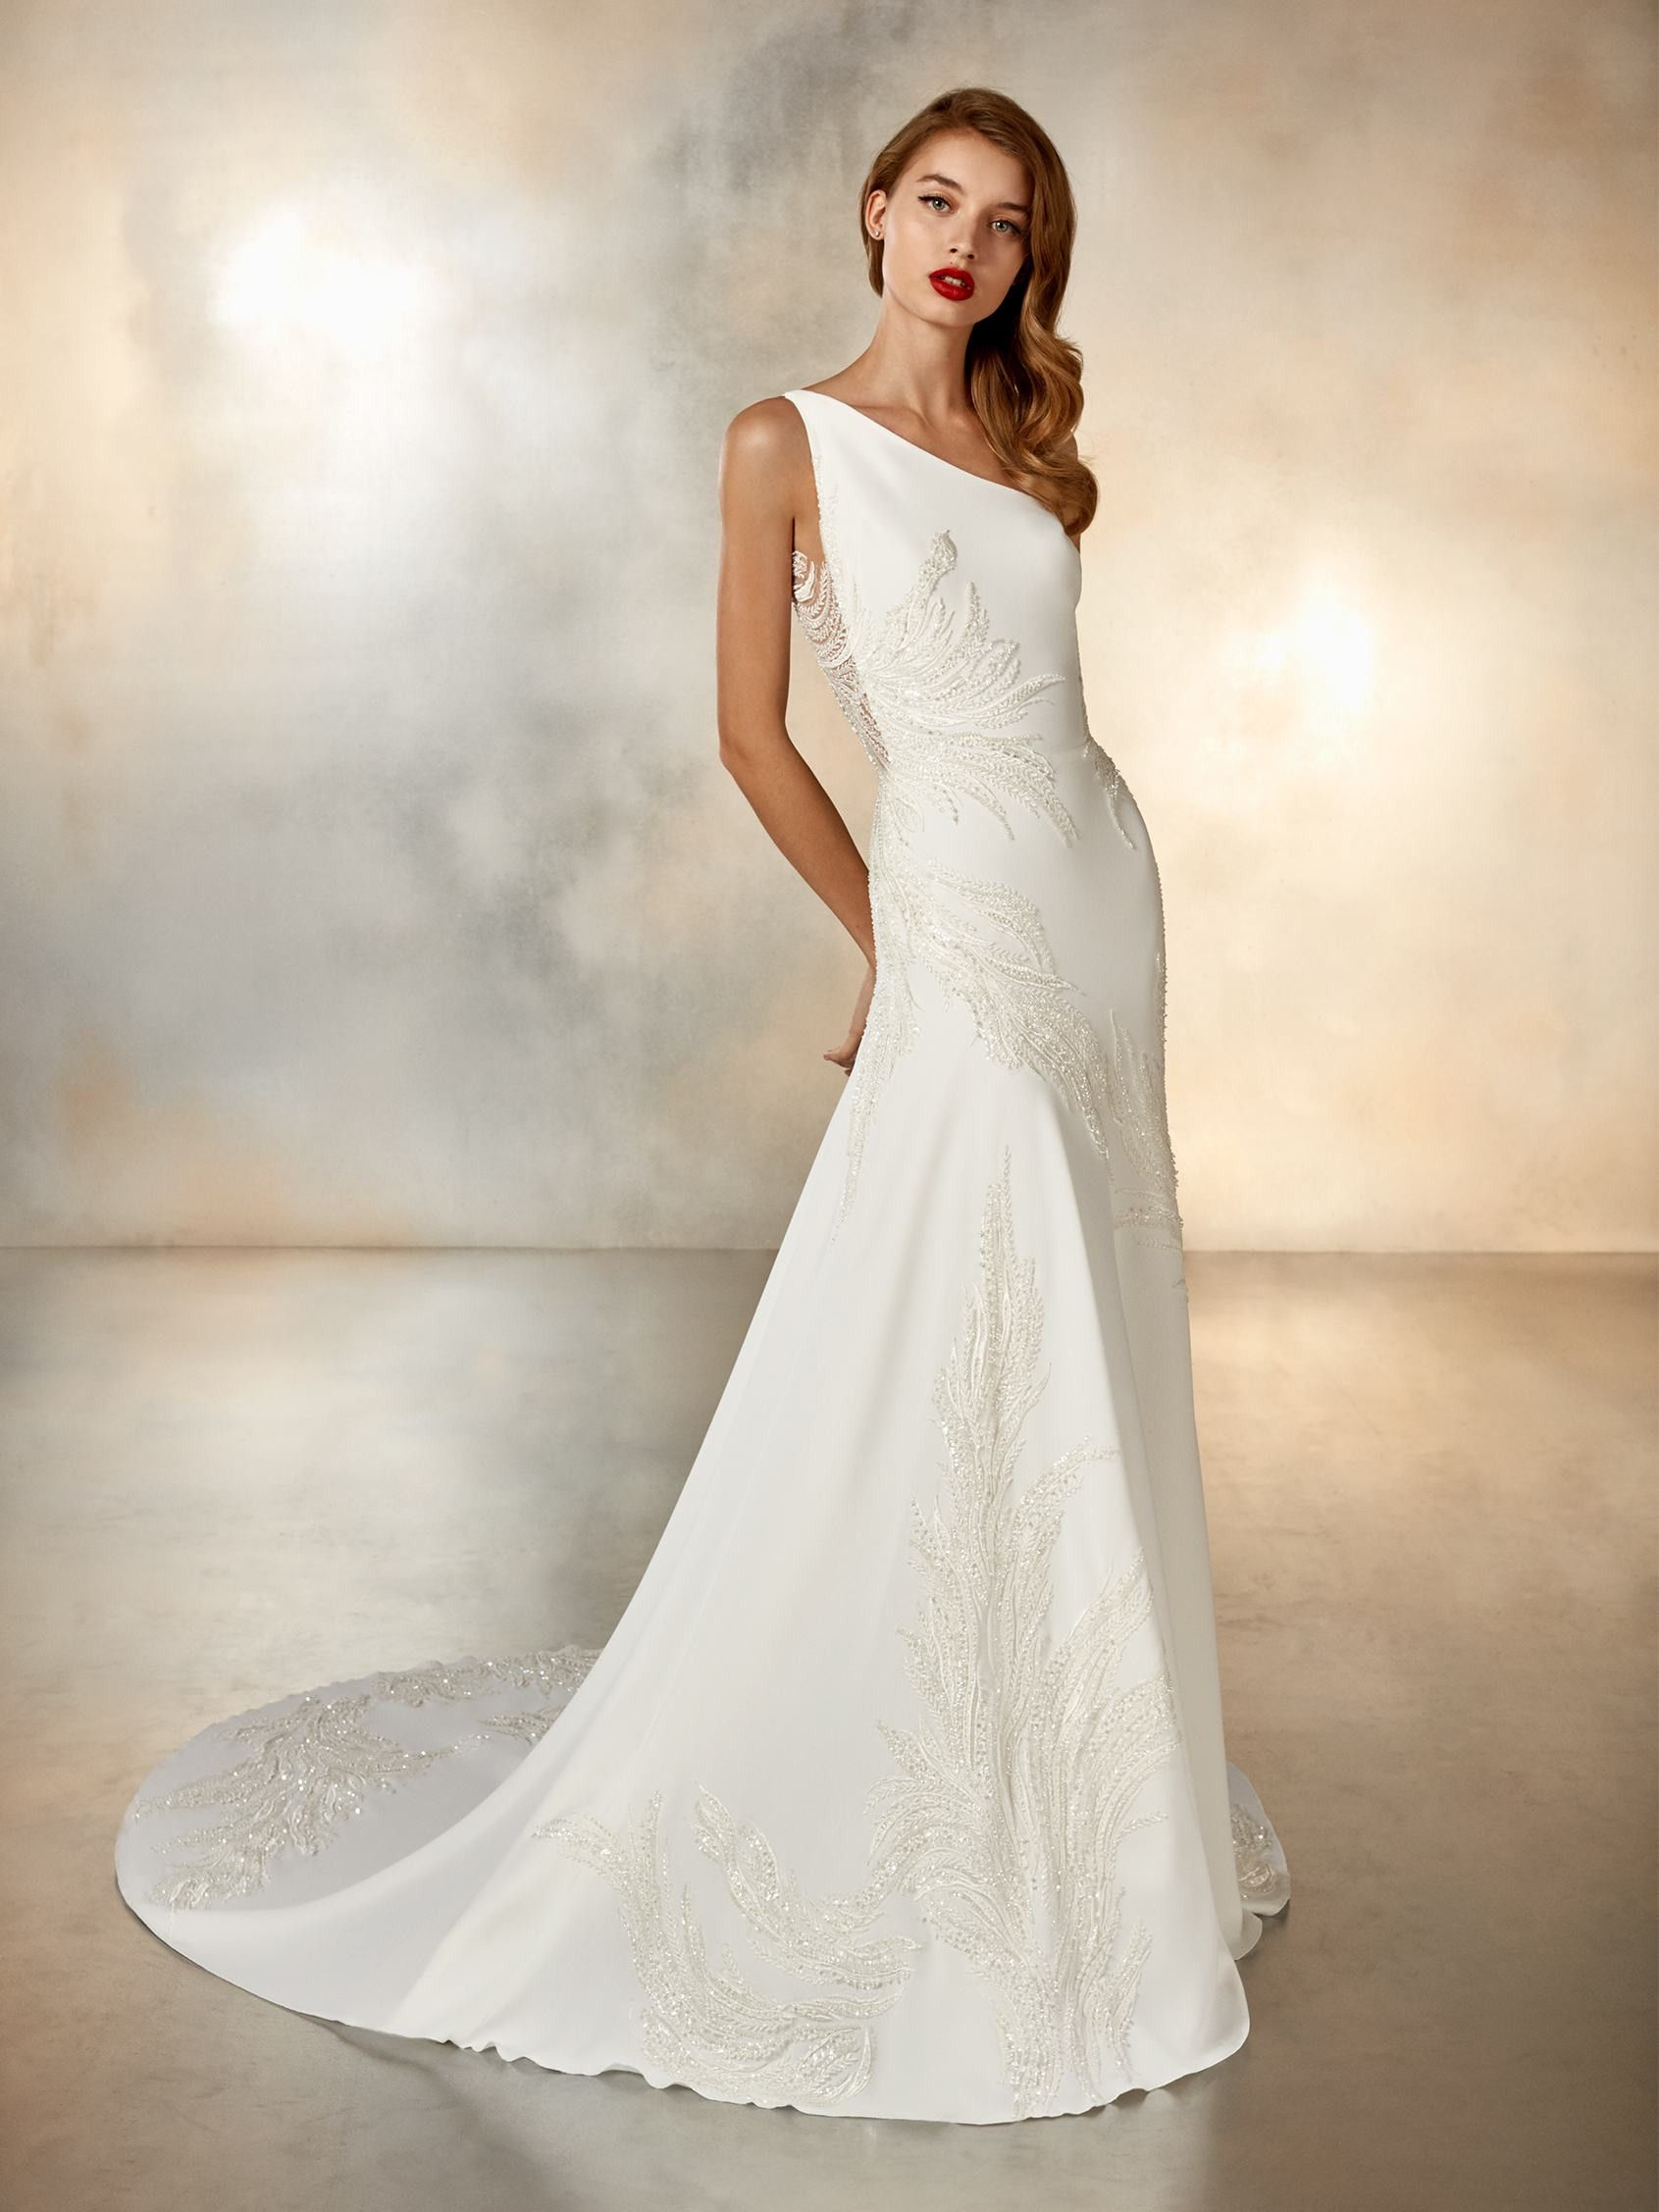 68a4e543f84 One shoulder wedding dress with illusion back